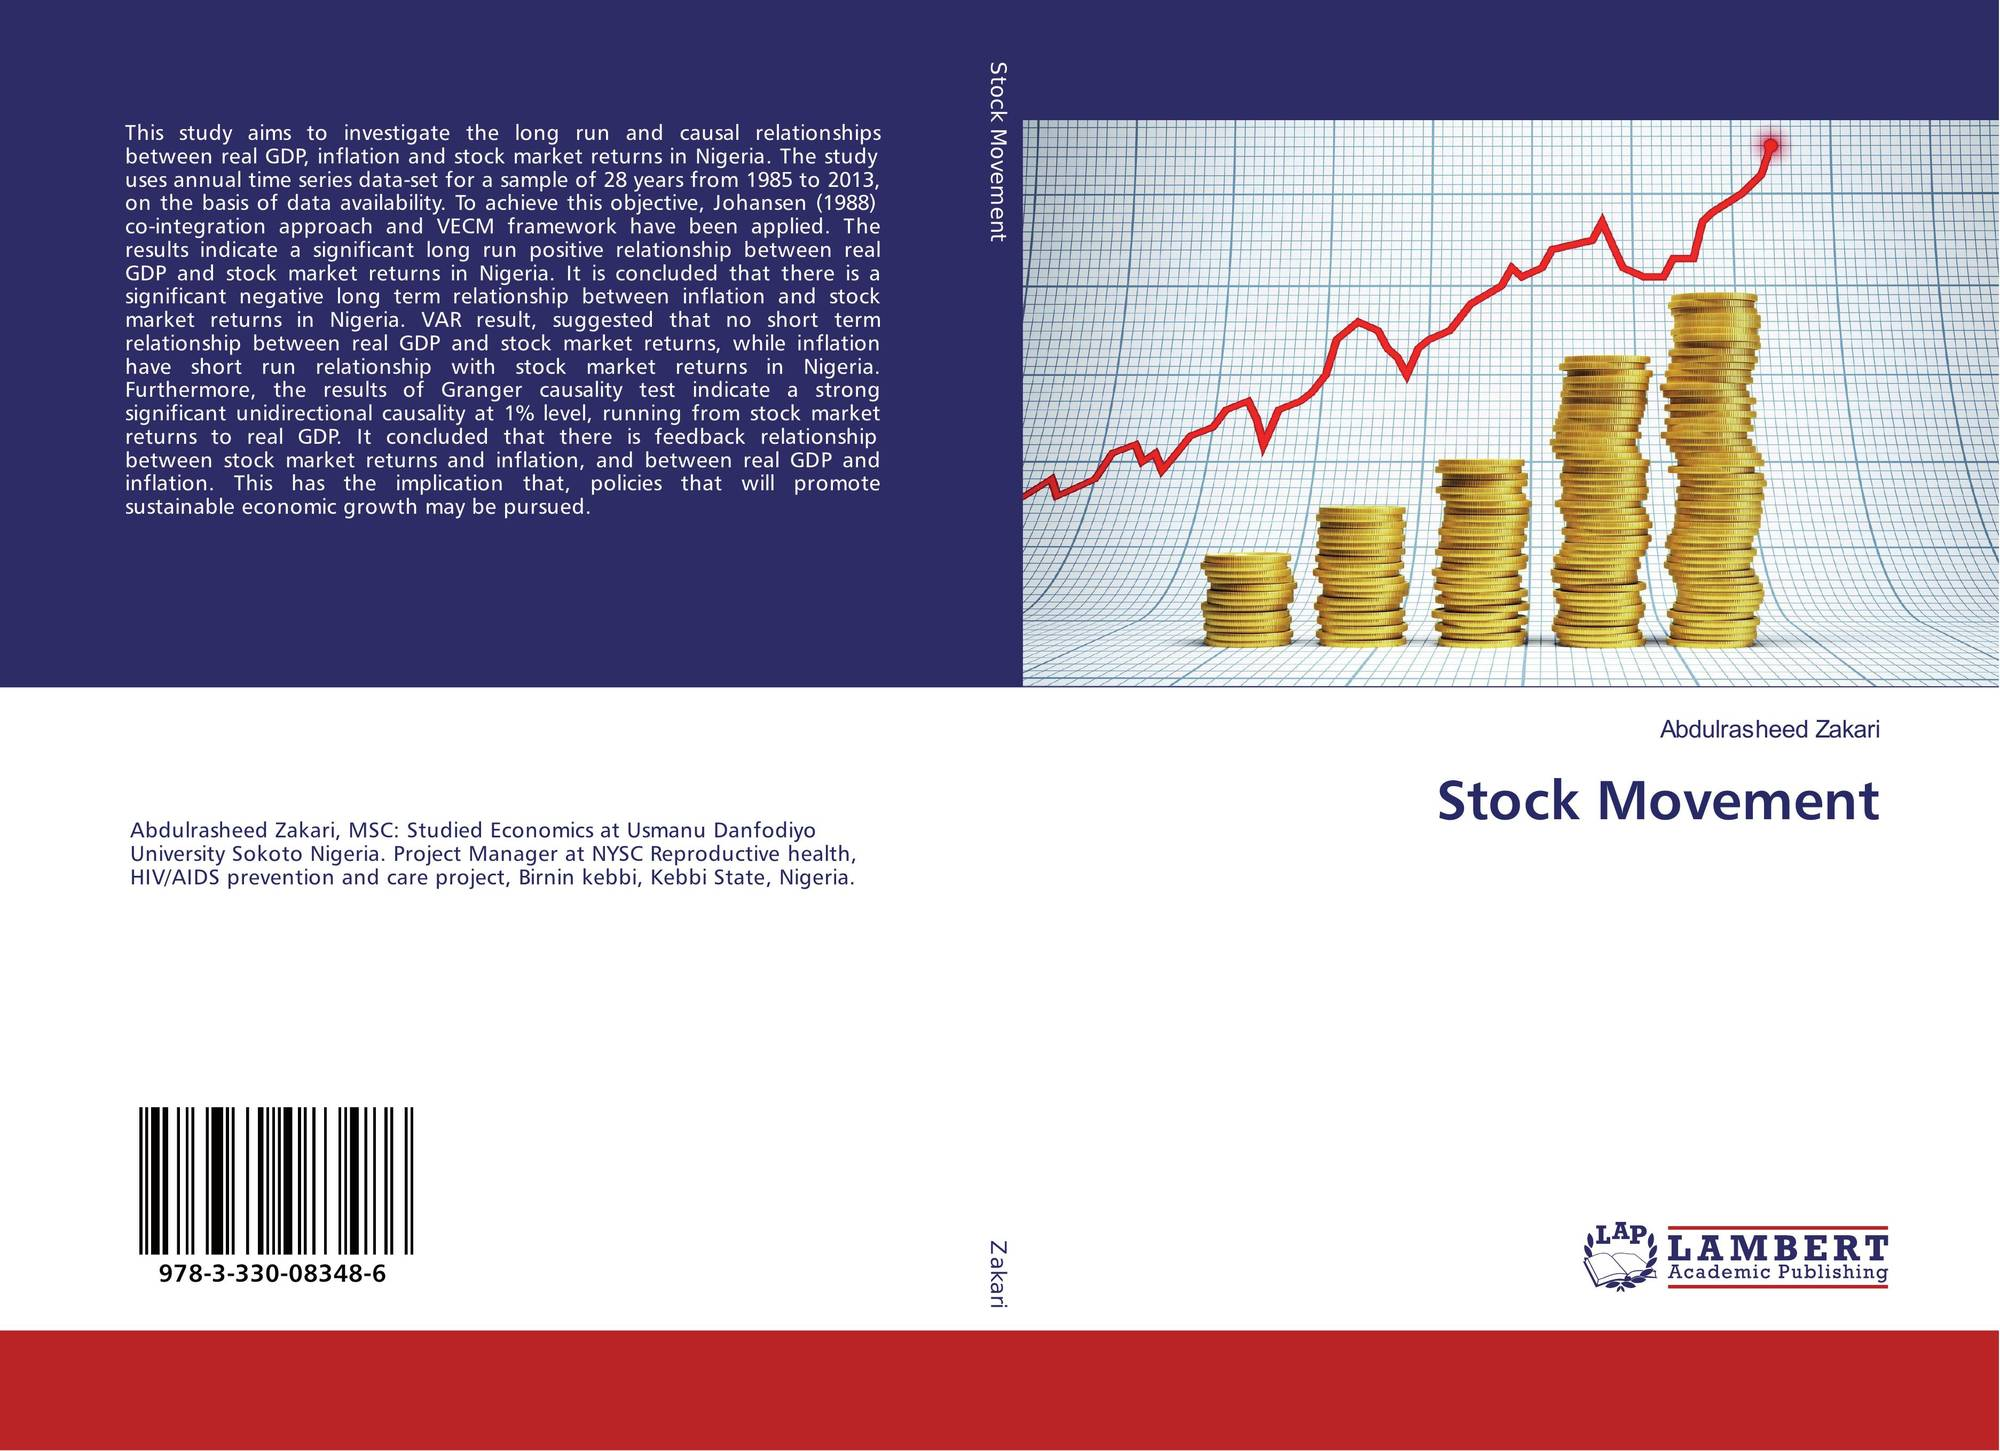 assessing stock market movements essay Overview of the world`s largest and most important stock market indices on a world map overview of the world`s largest and most important stock market indices on a world map markets.